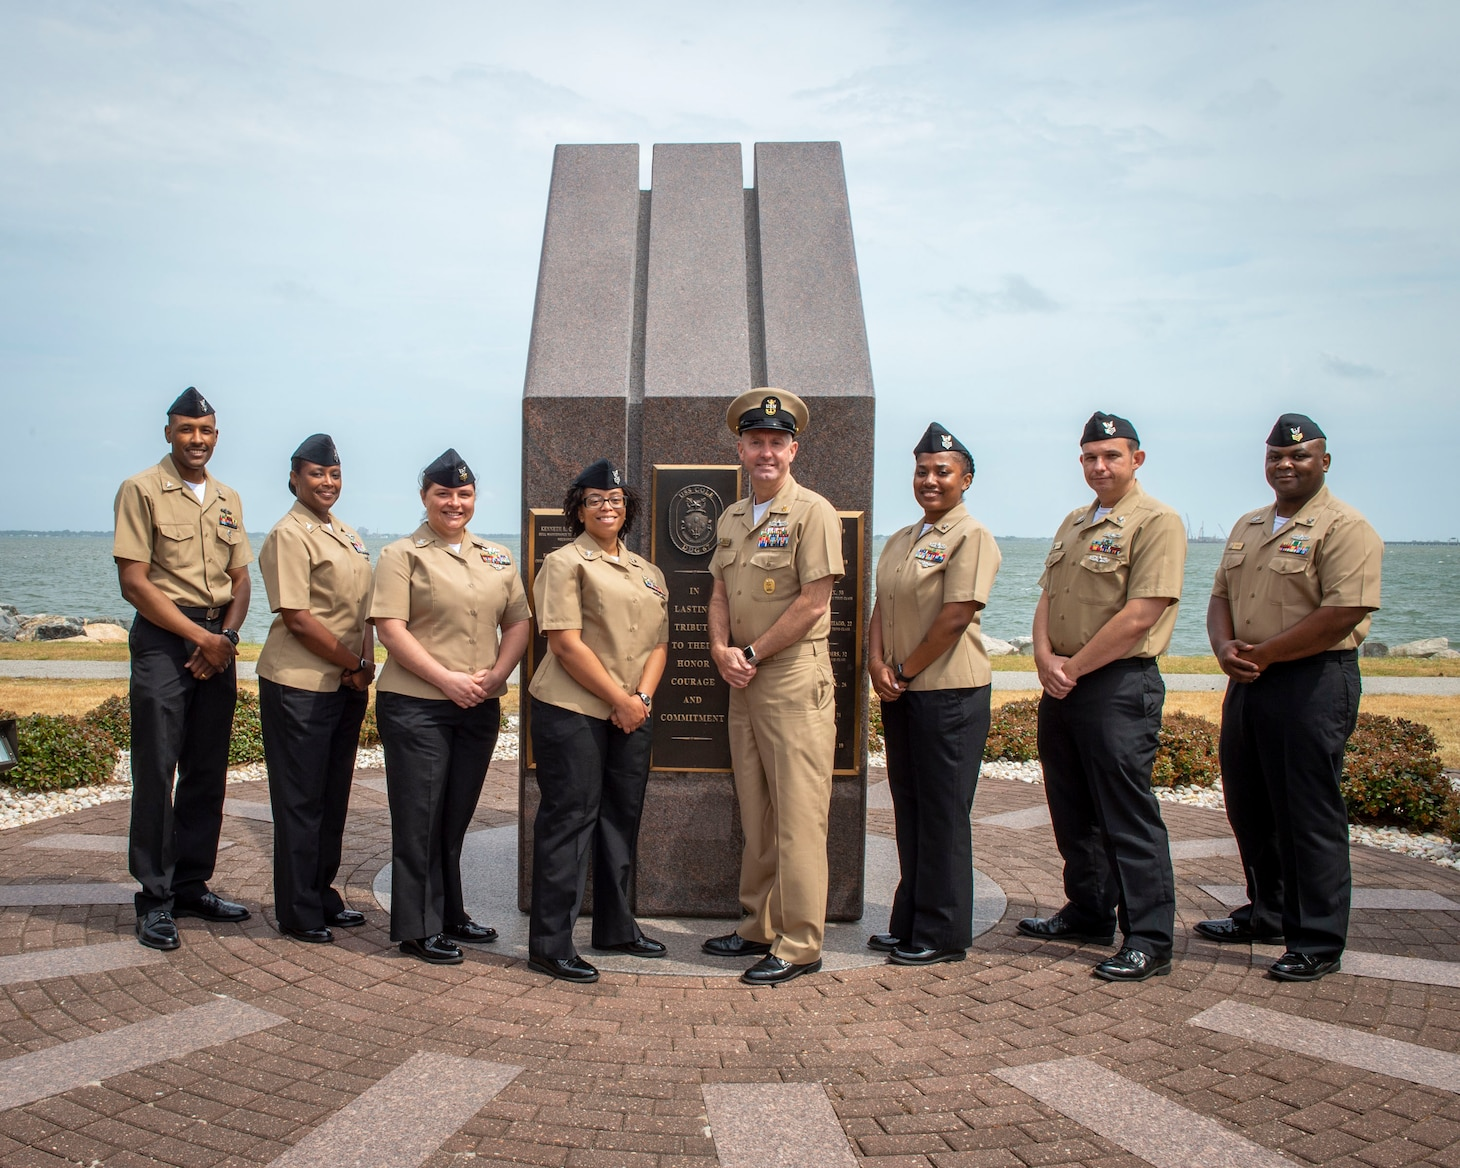 U.S. Fleet Forces Command Fleet Master Chief Rick O�Rawe, center, poses with the 2020 Sea and Shore Sailor of the Year (SOY) finalists during a visit to the USS Cole (DDG 67) memorial at Naval Station Norfolk, May 24, 2021.